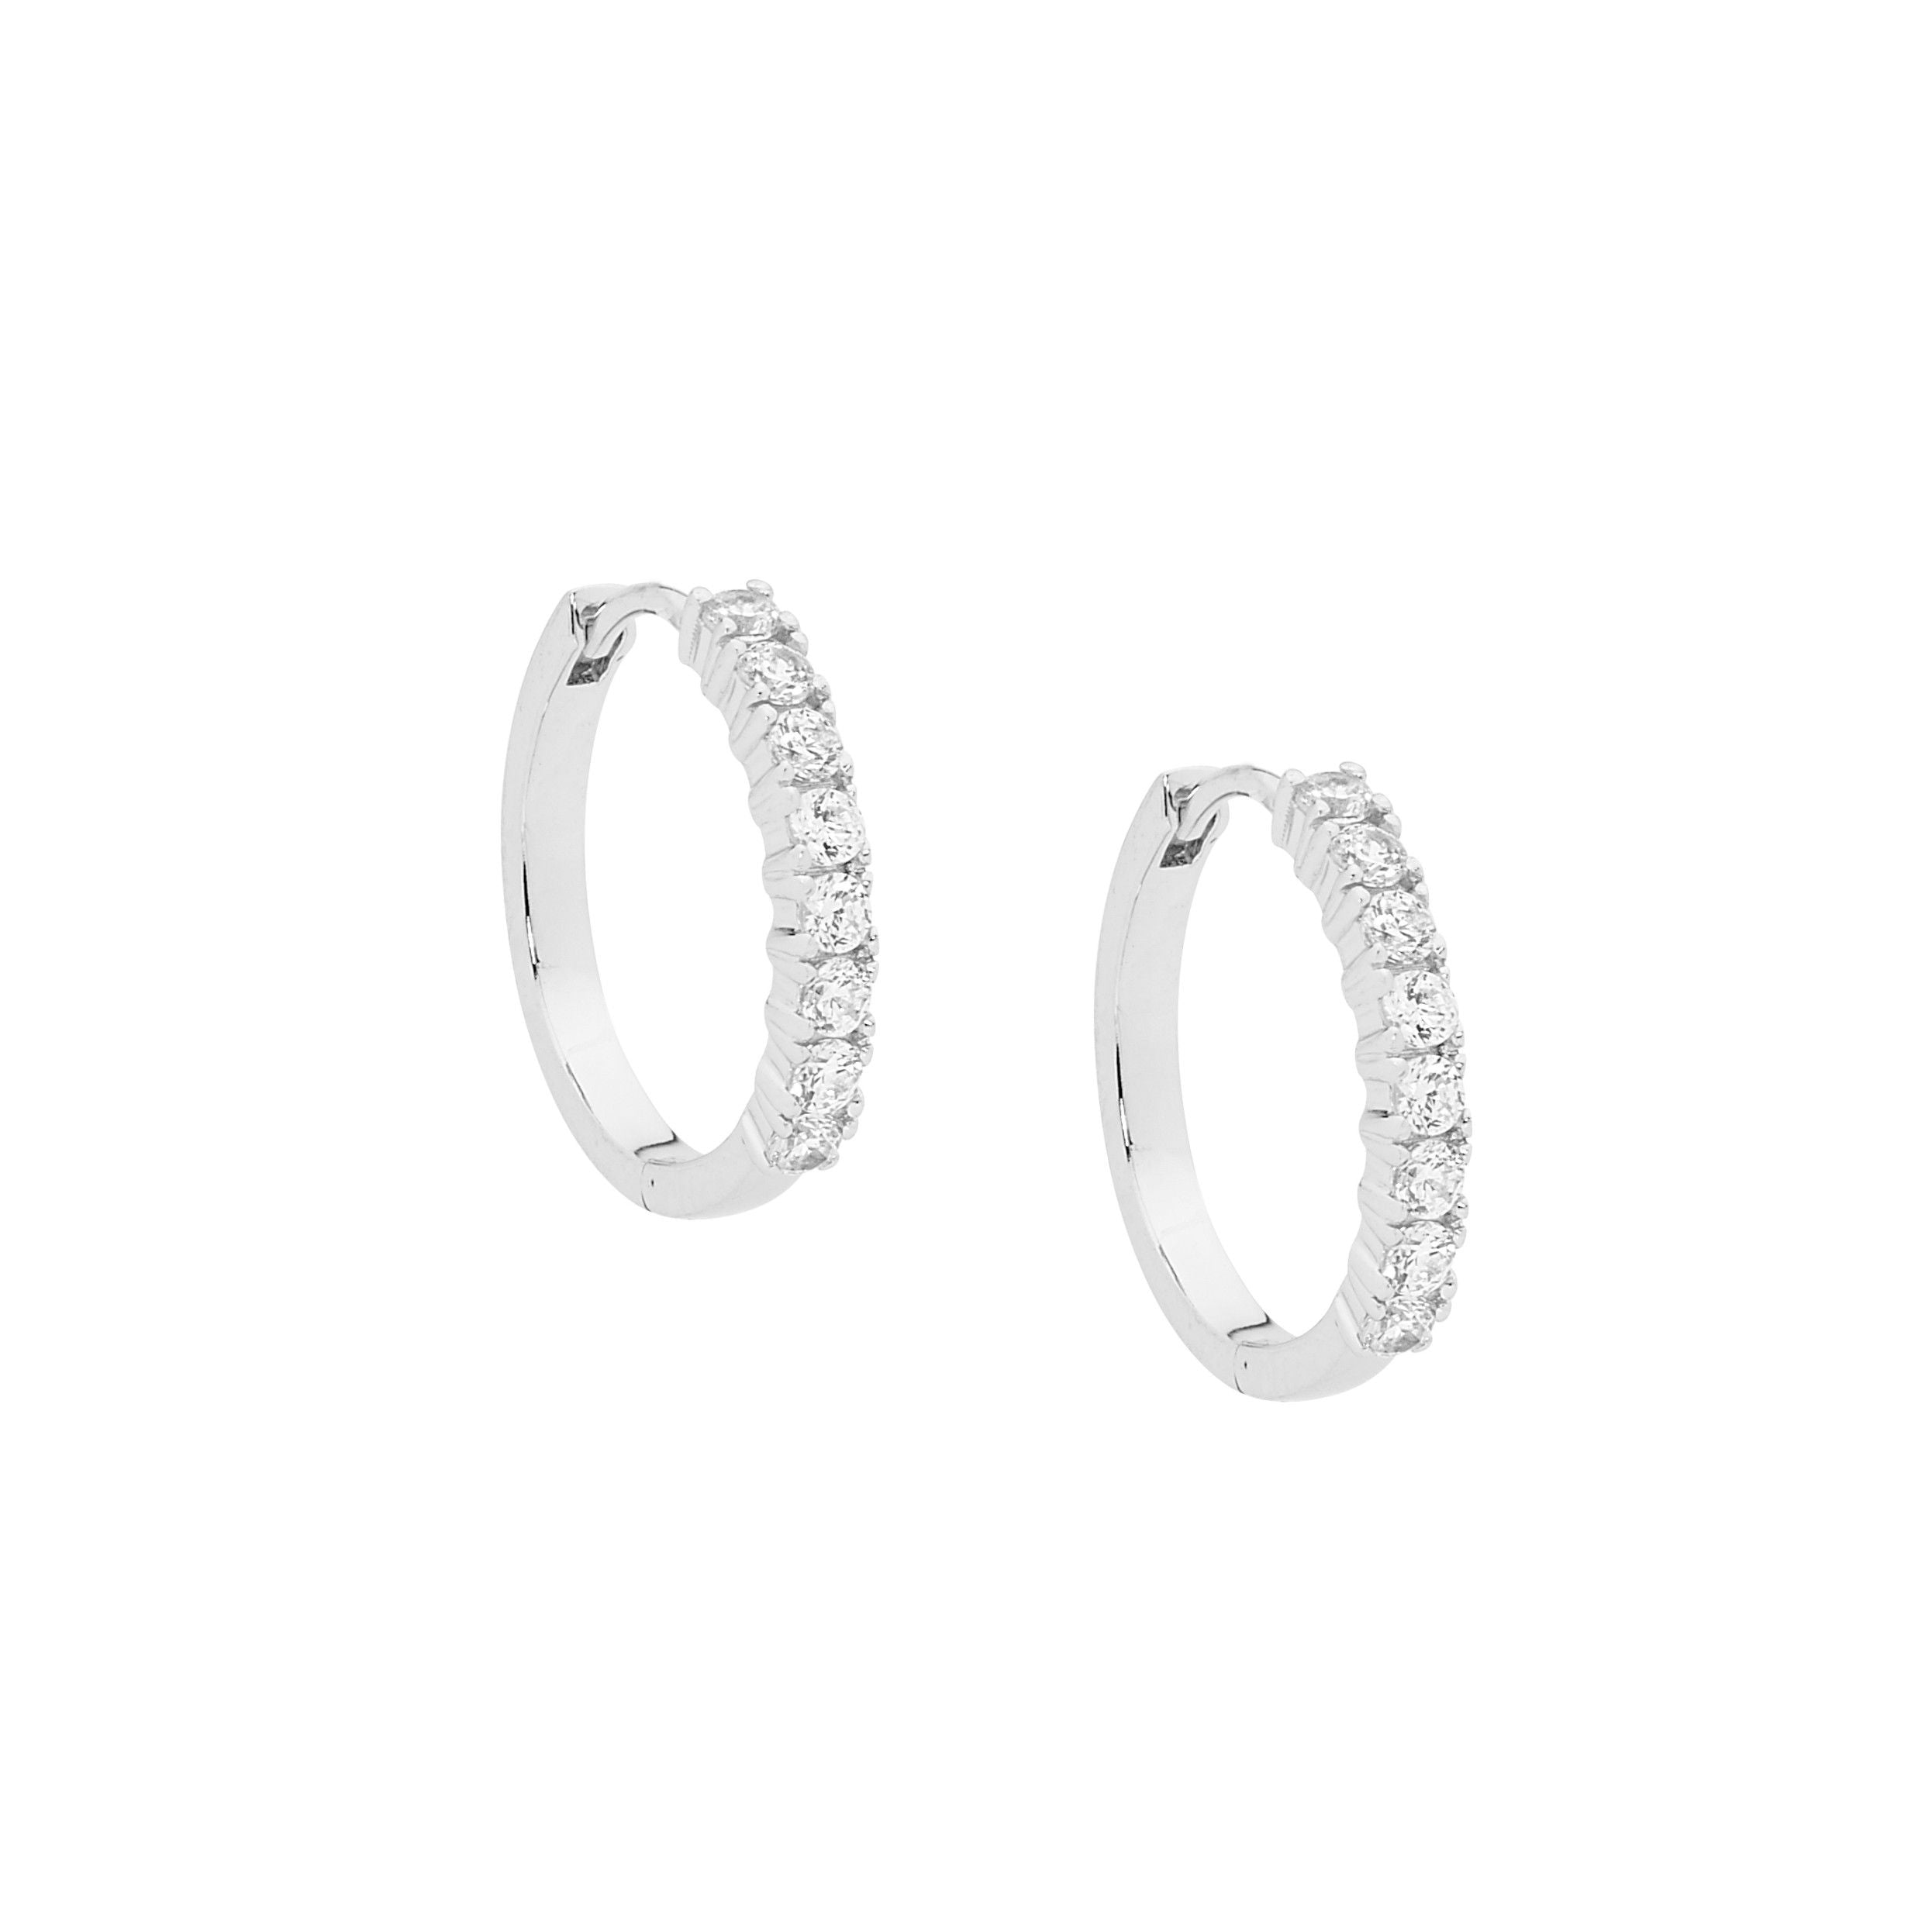 Ellani SS WH CZ 15mm Hoop Earrings